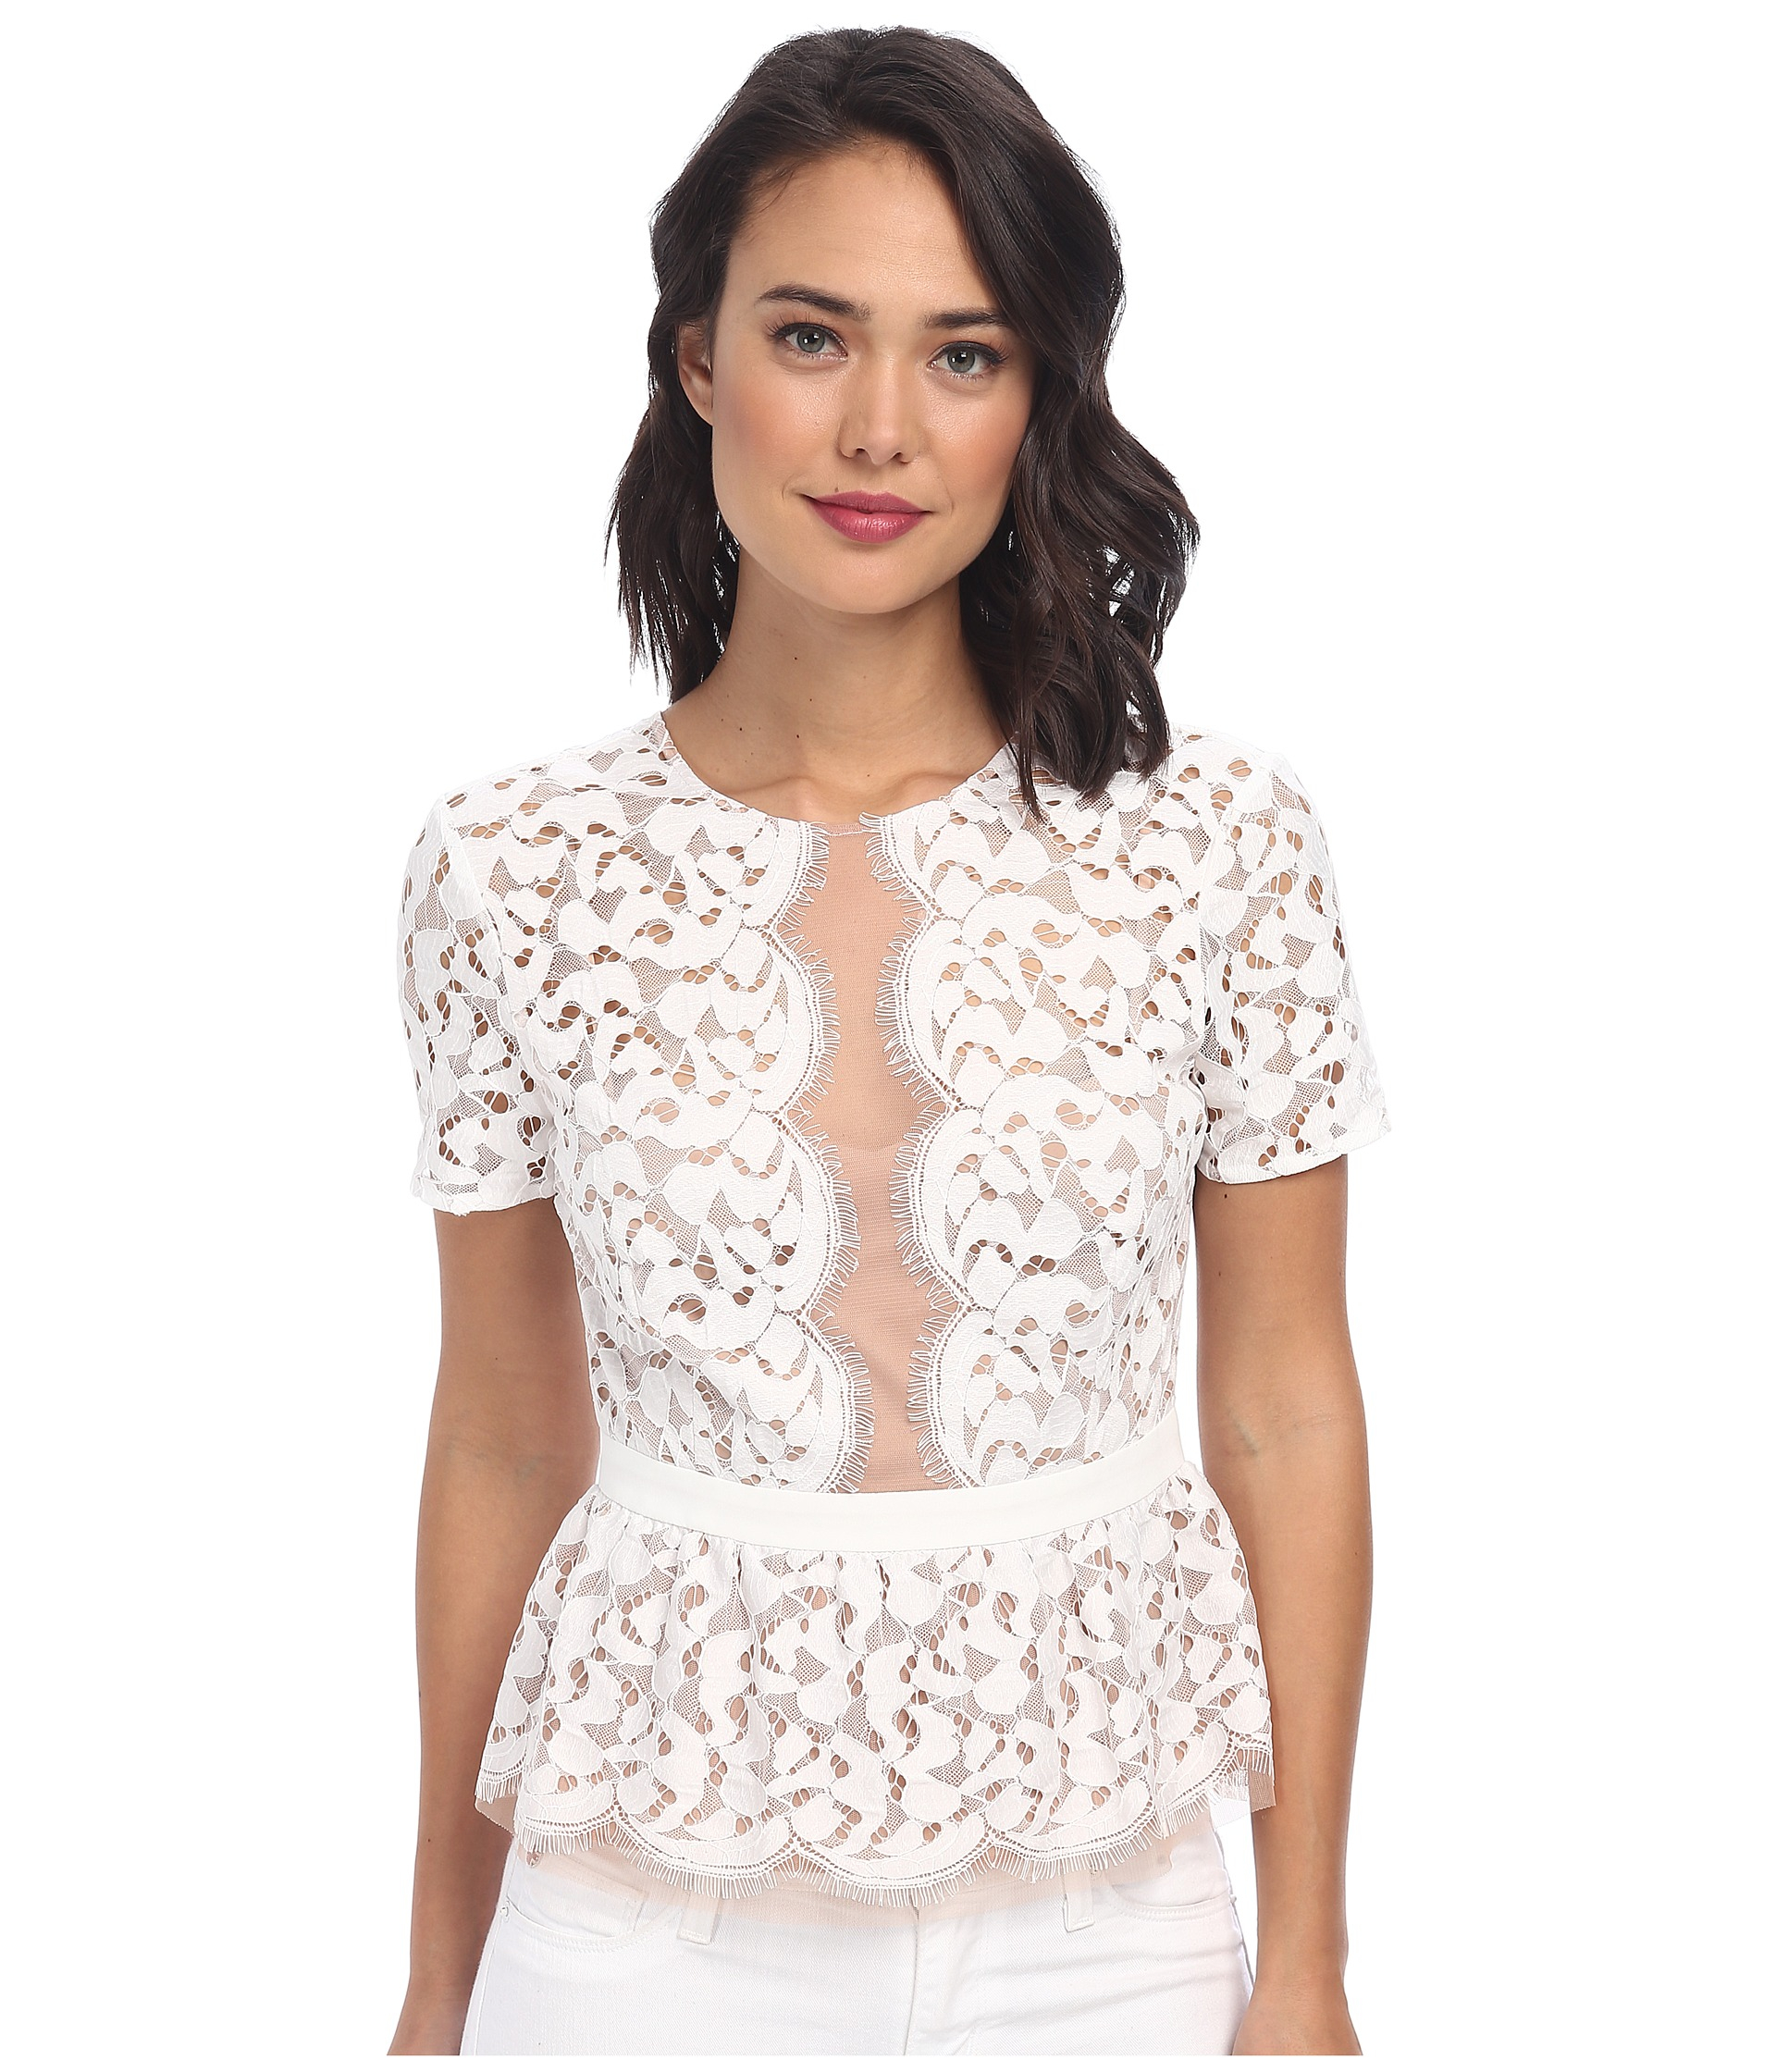 We are loving the chic feels of the Remmy White Lace Peplum Top! Elegant white lace overlay and nude stretch knit shapes a rounded neckline, with a plunging, sheer mesh insert. The sleeveless bodice has pierced crochet detail throughout. Chic peplum hem ends in /5(8).